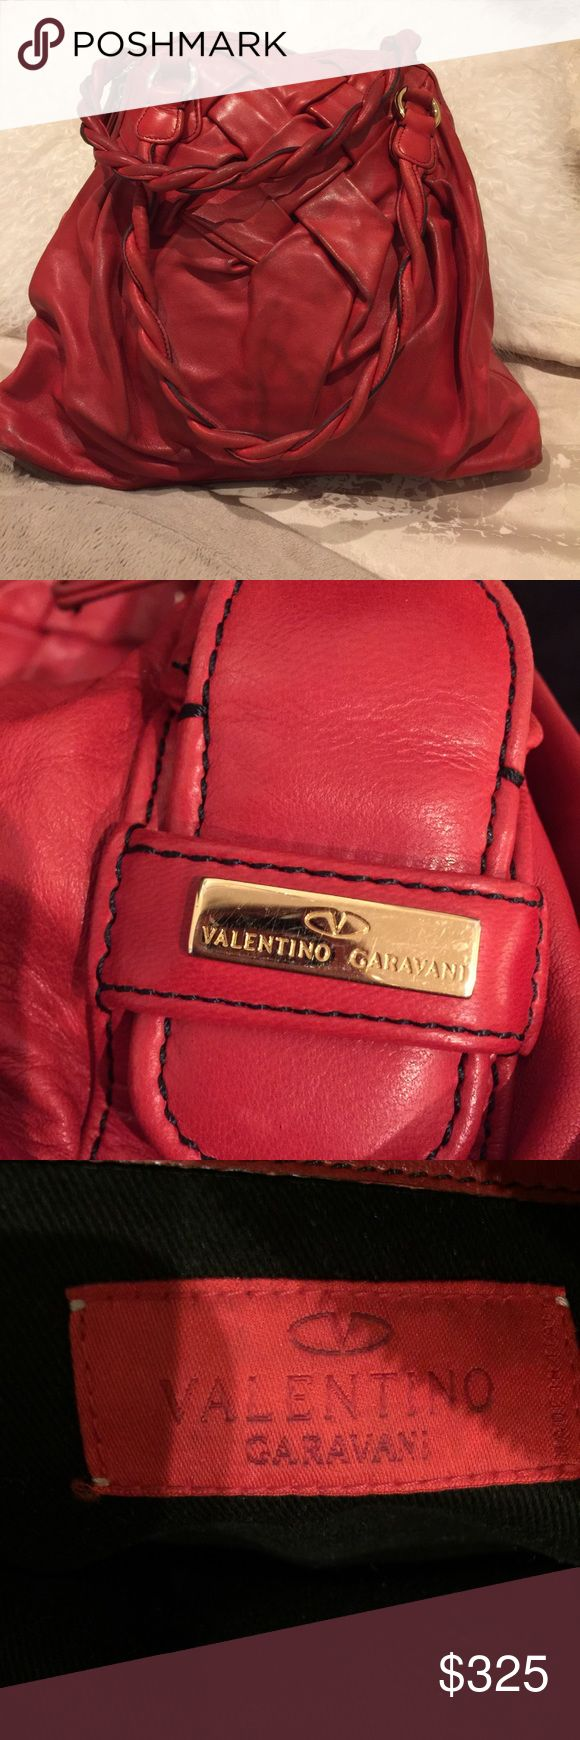 """Authentic Valentino Red Leather Bag Authentic Valentino Garavani Red Leather Bag. Soft Leather, Braided Handles. Roomy! Measures = 13"""" H x 15"""" W x 6"""" D. Handle Drop apx. 9"""" to top of the bag. Purchased at Saks on Fifth Ave. in NYC about 5 years ago. Overall Good Condition. Much Loved. Used A Lot! See Photos for Wear At Corners and Darkening Throughout Bag, Small Water Stain on Bottom. Inside Great Condition. Far From Perfect -- But No Rips, Tears, Etc. Just Regular Wear On Exterior. Ask Qs…"""